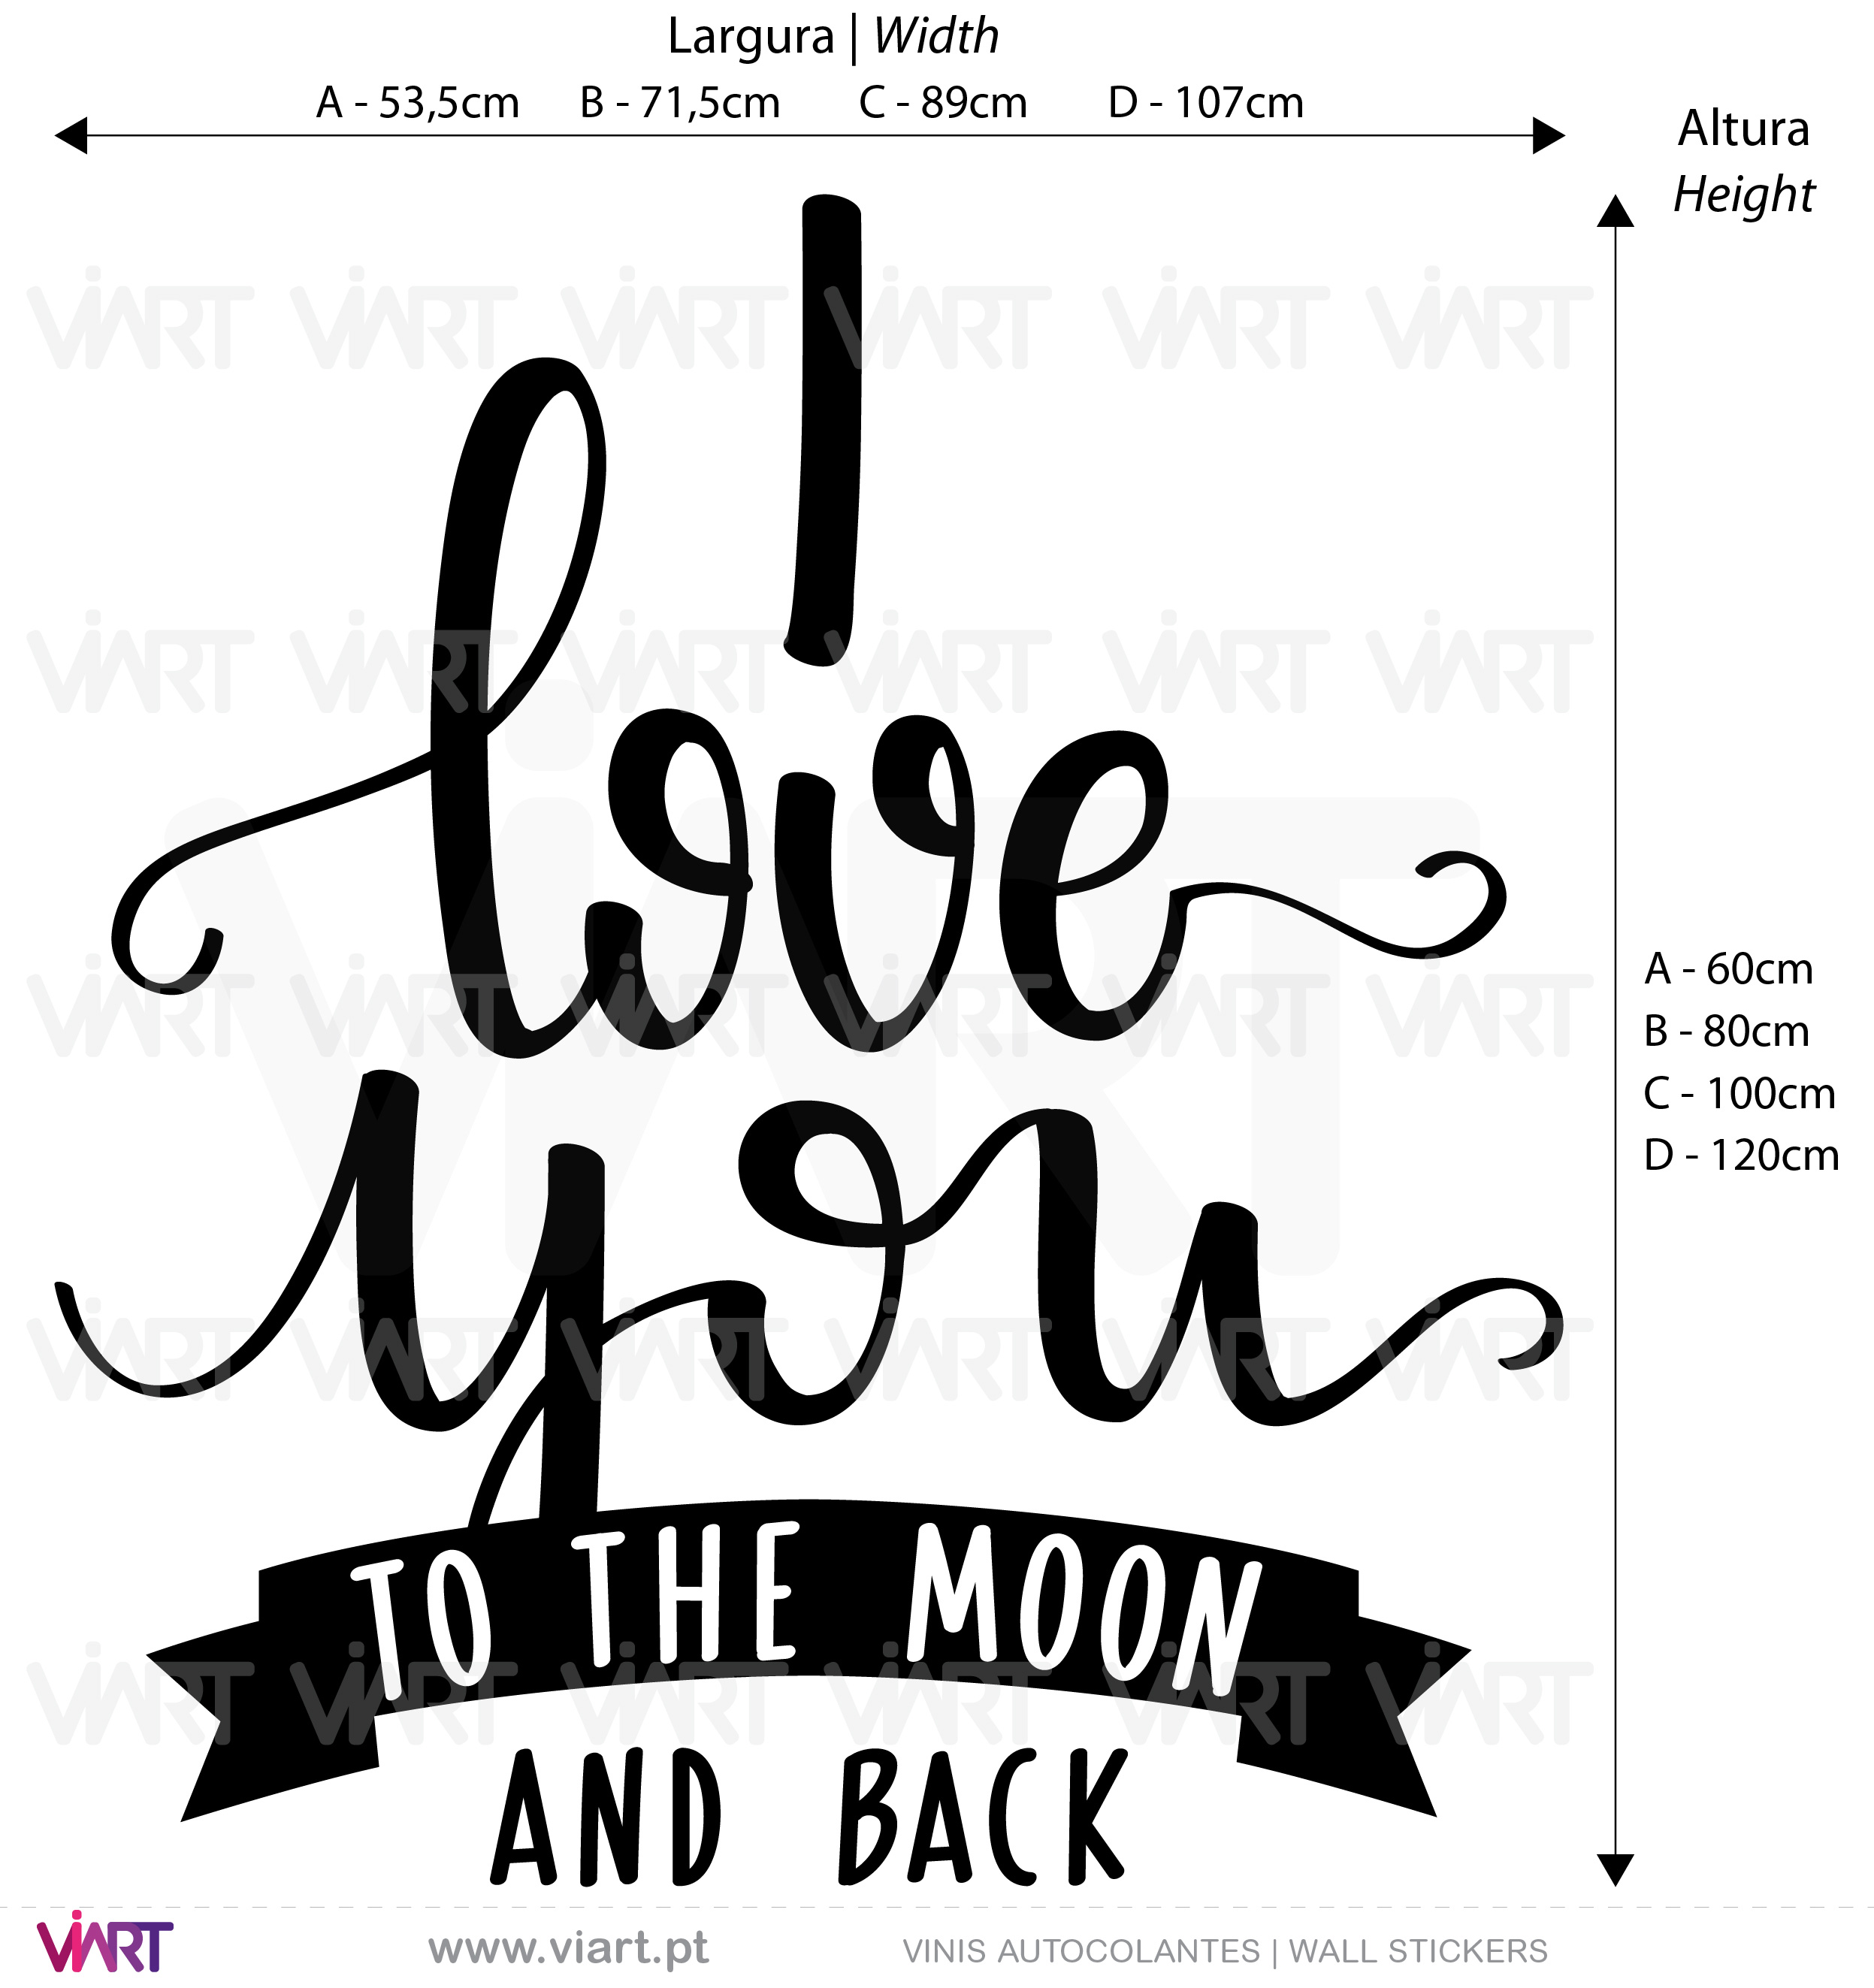 I love you to the moon and back! - Viart - Vinis Autocolantes decorativos. Decoração adesivos.